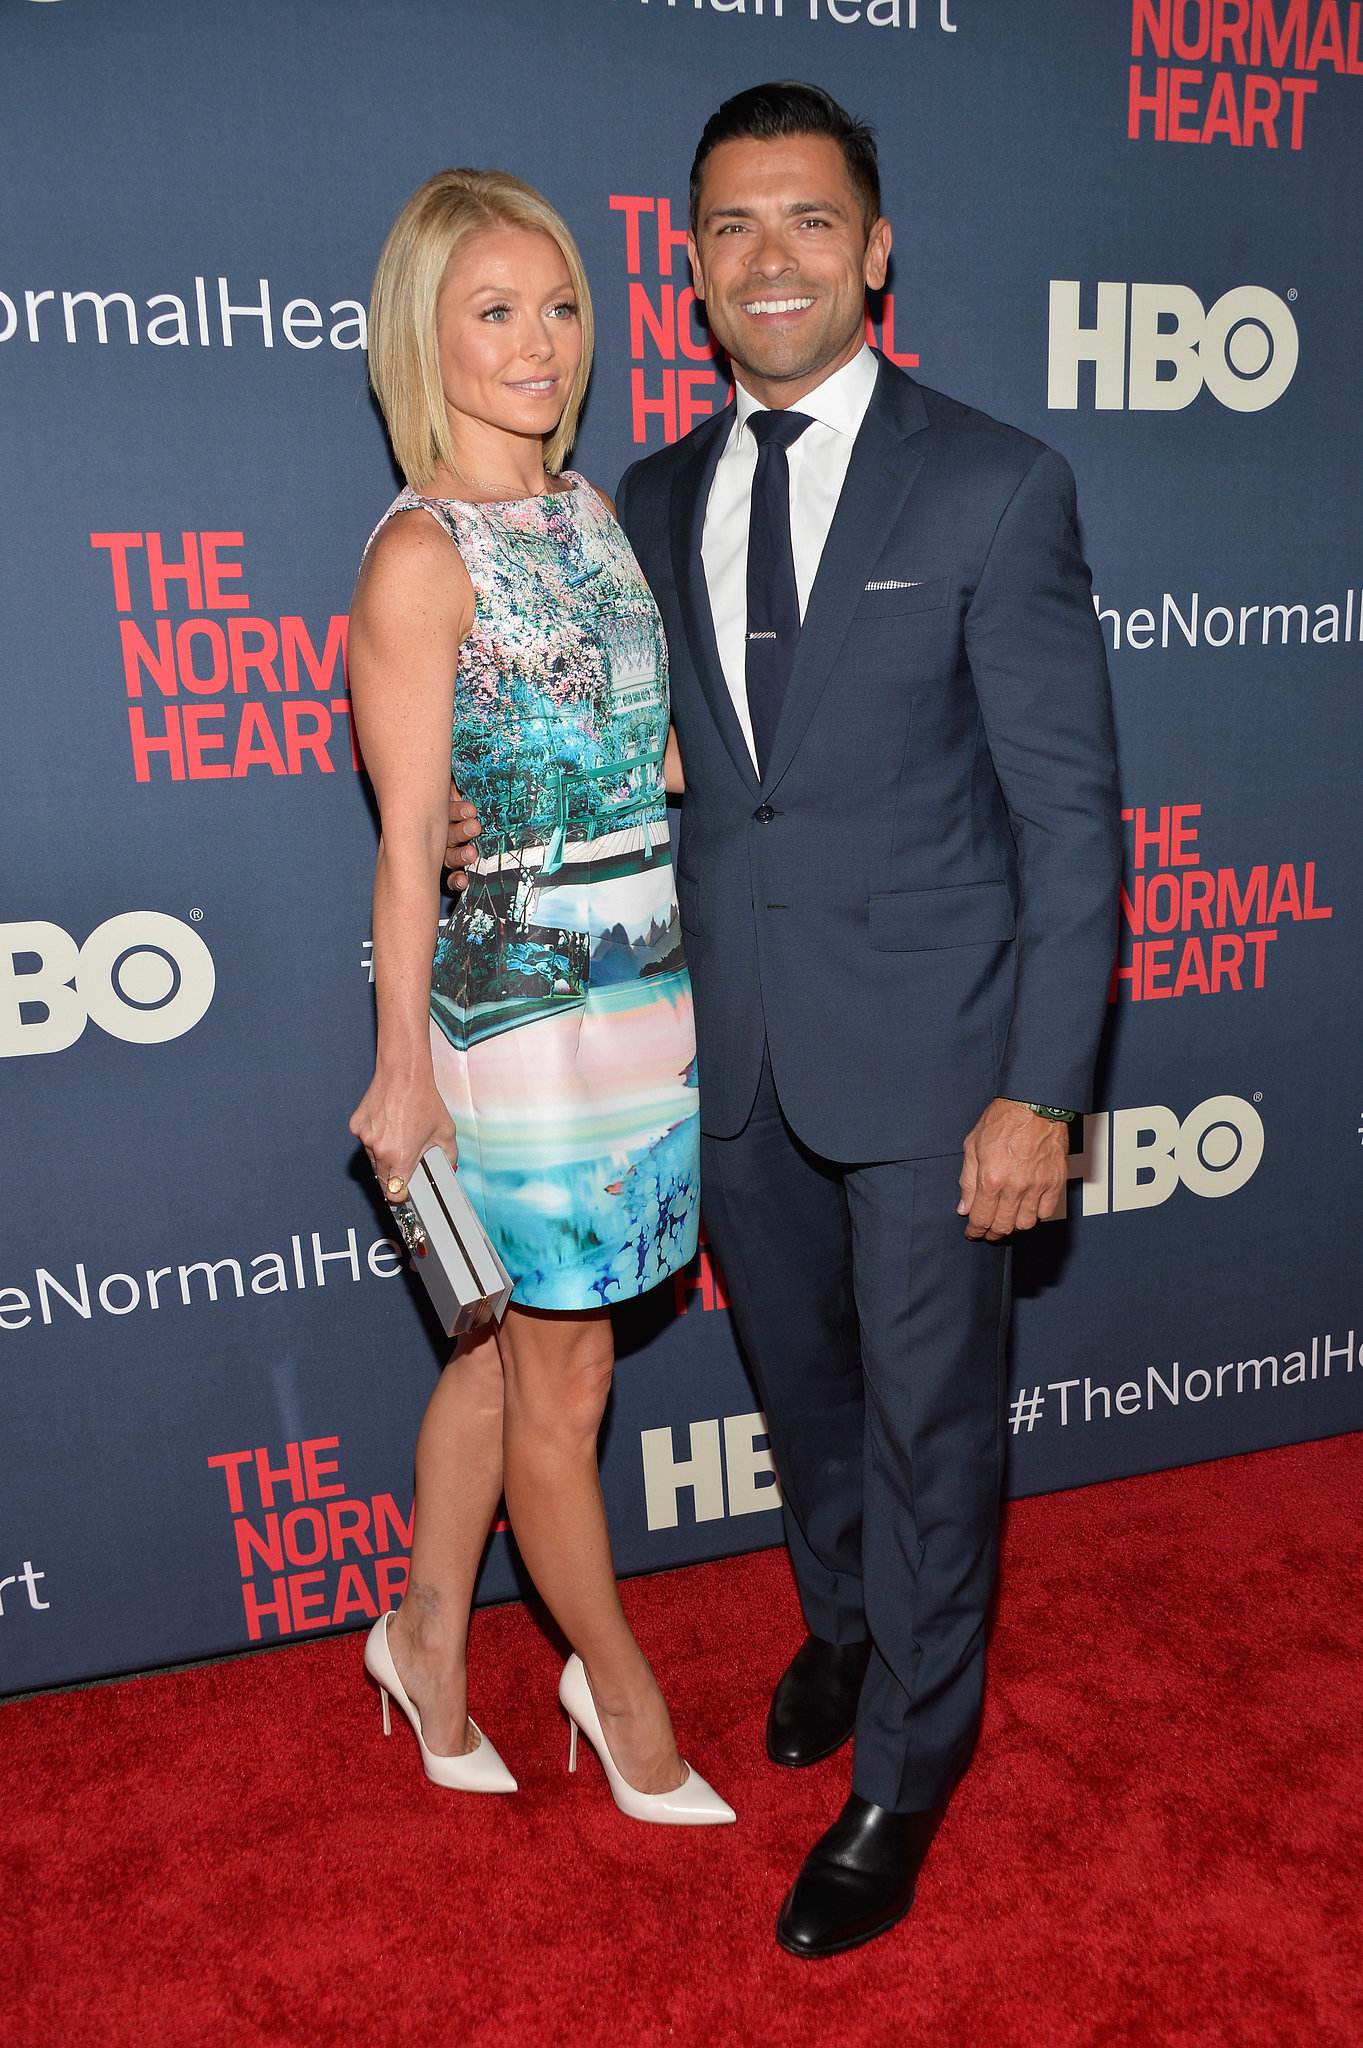 Kelly Ripa and Mark Consuelos arrived in style.